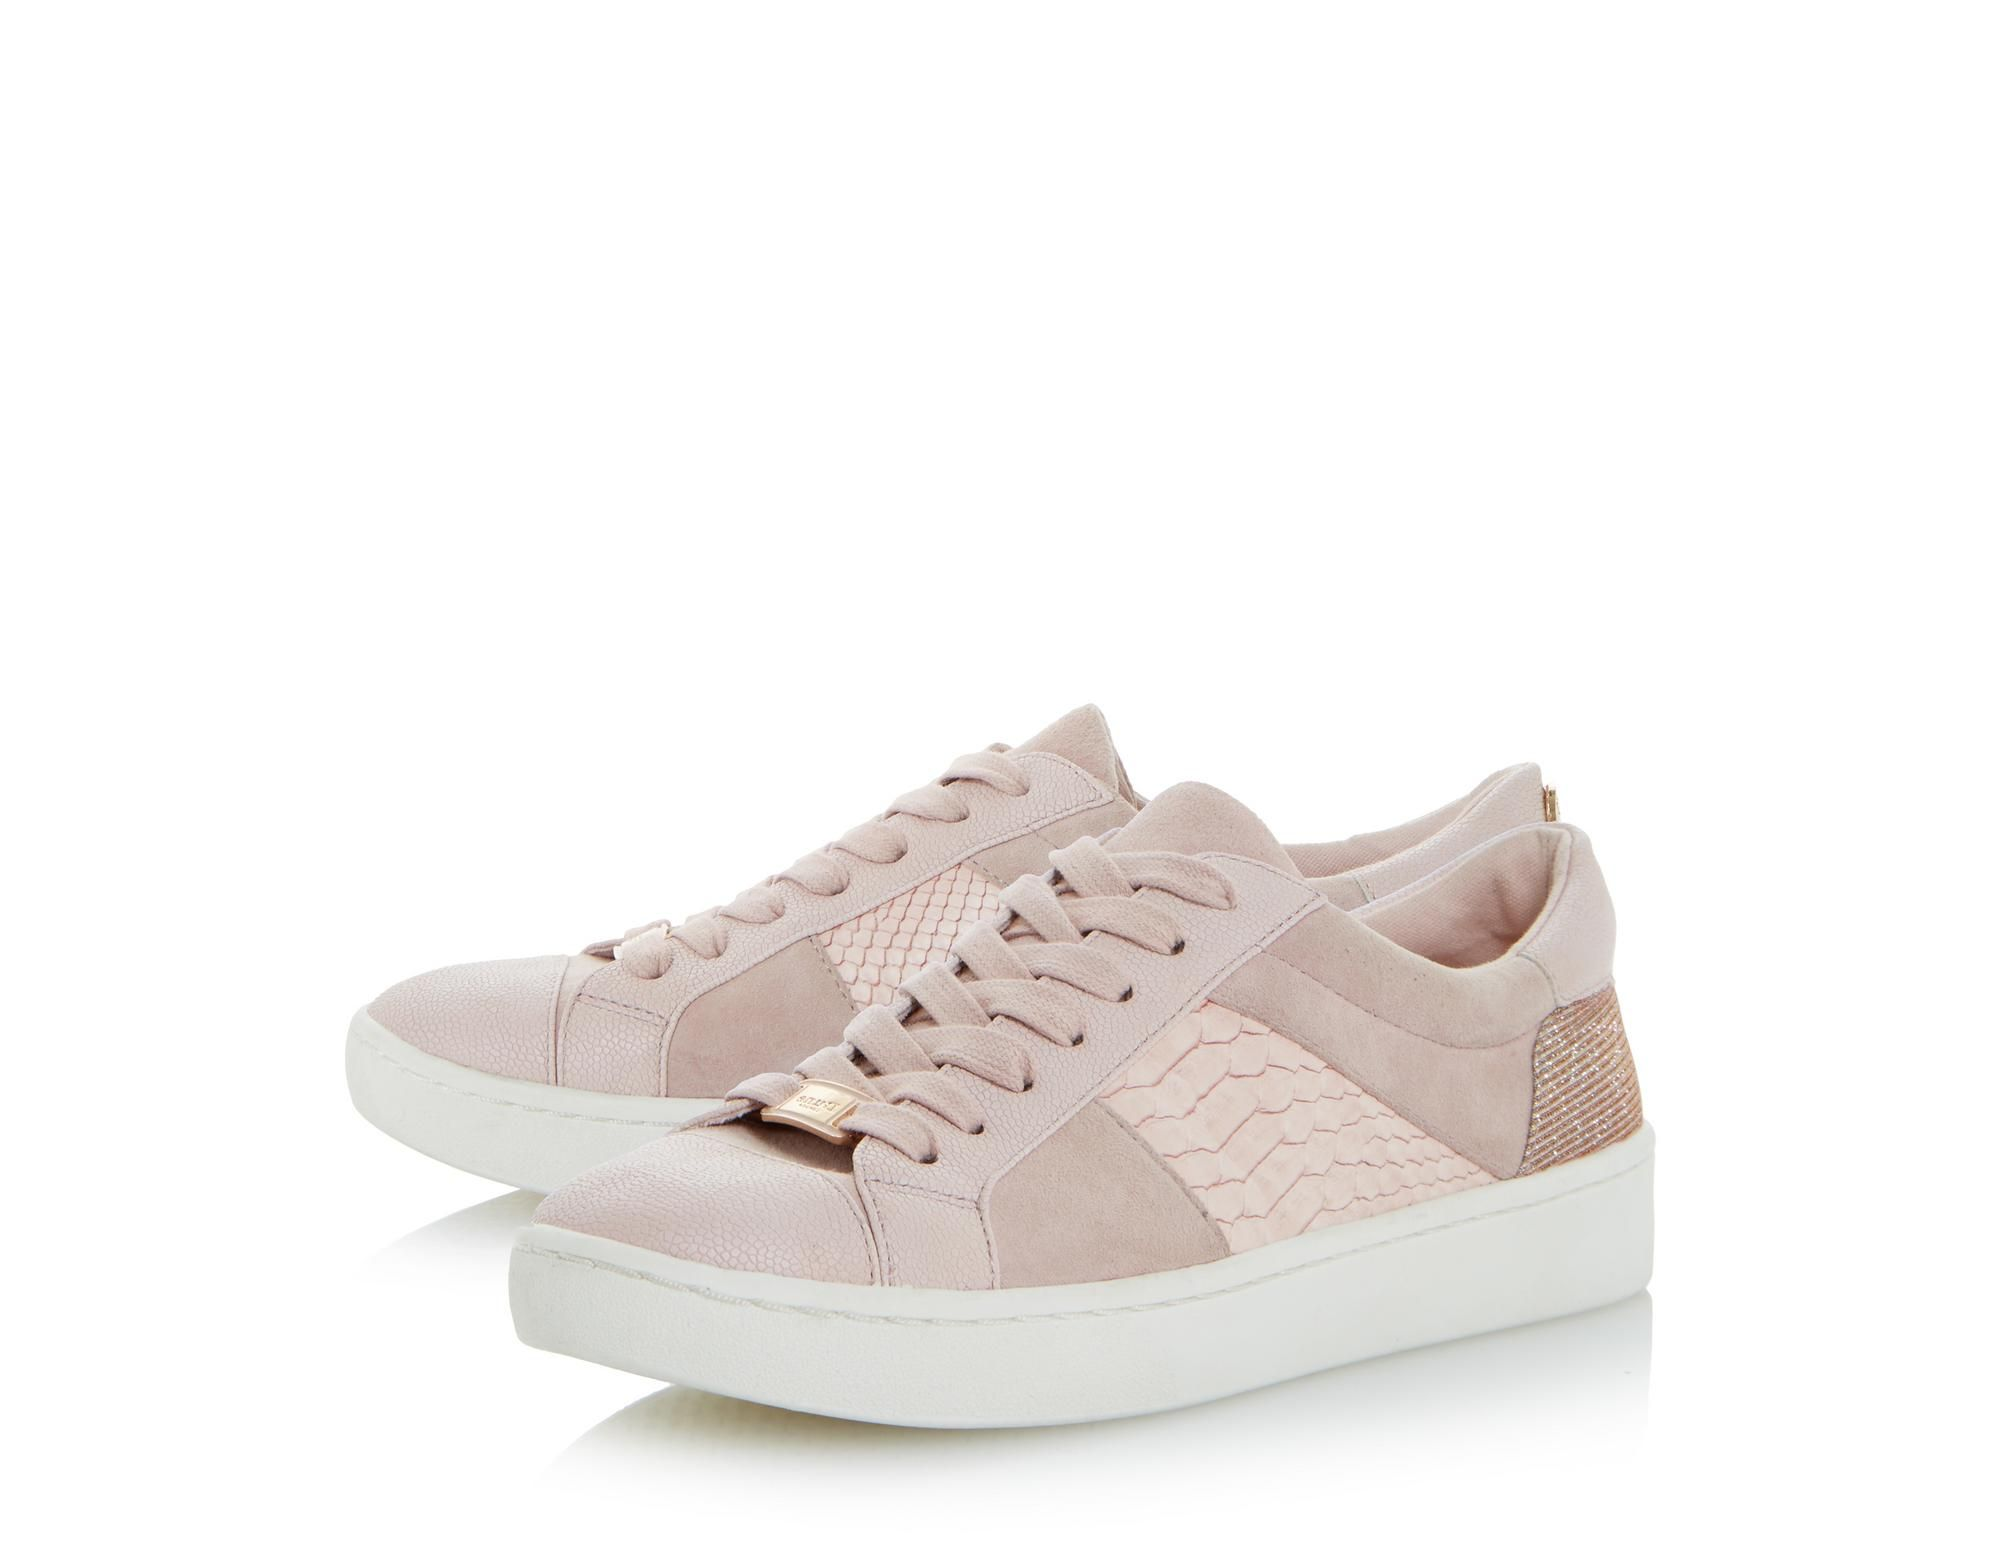 Give your everyday casual trainer